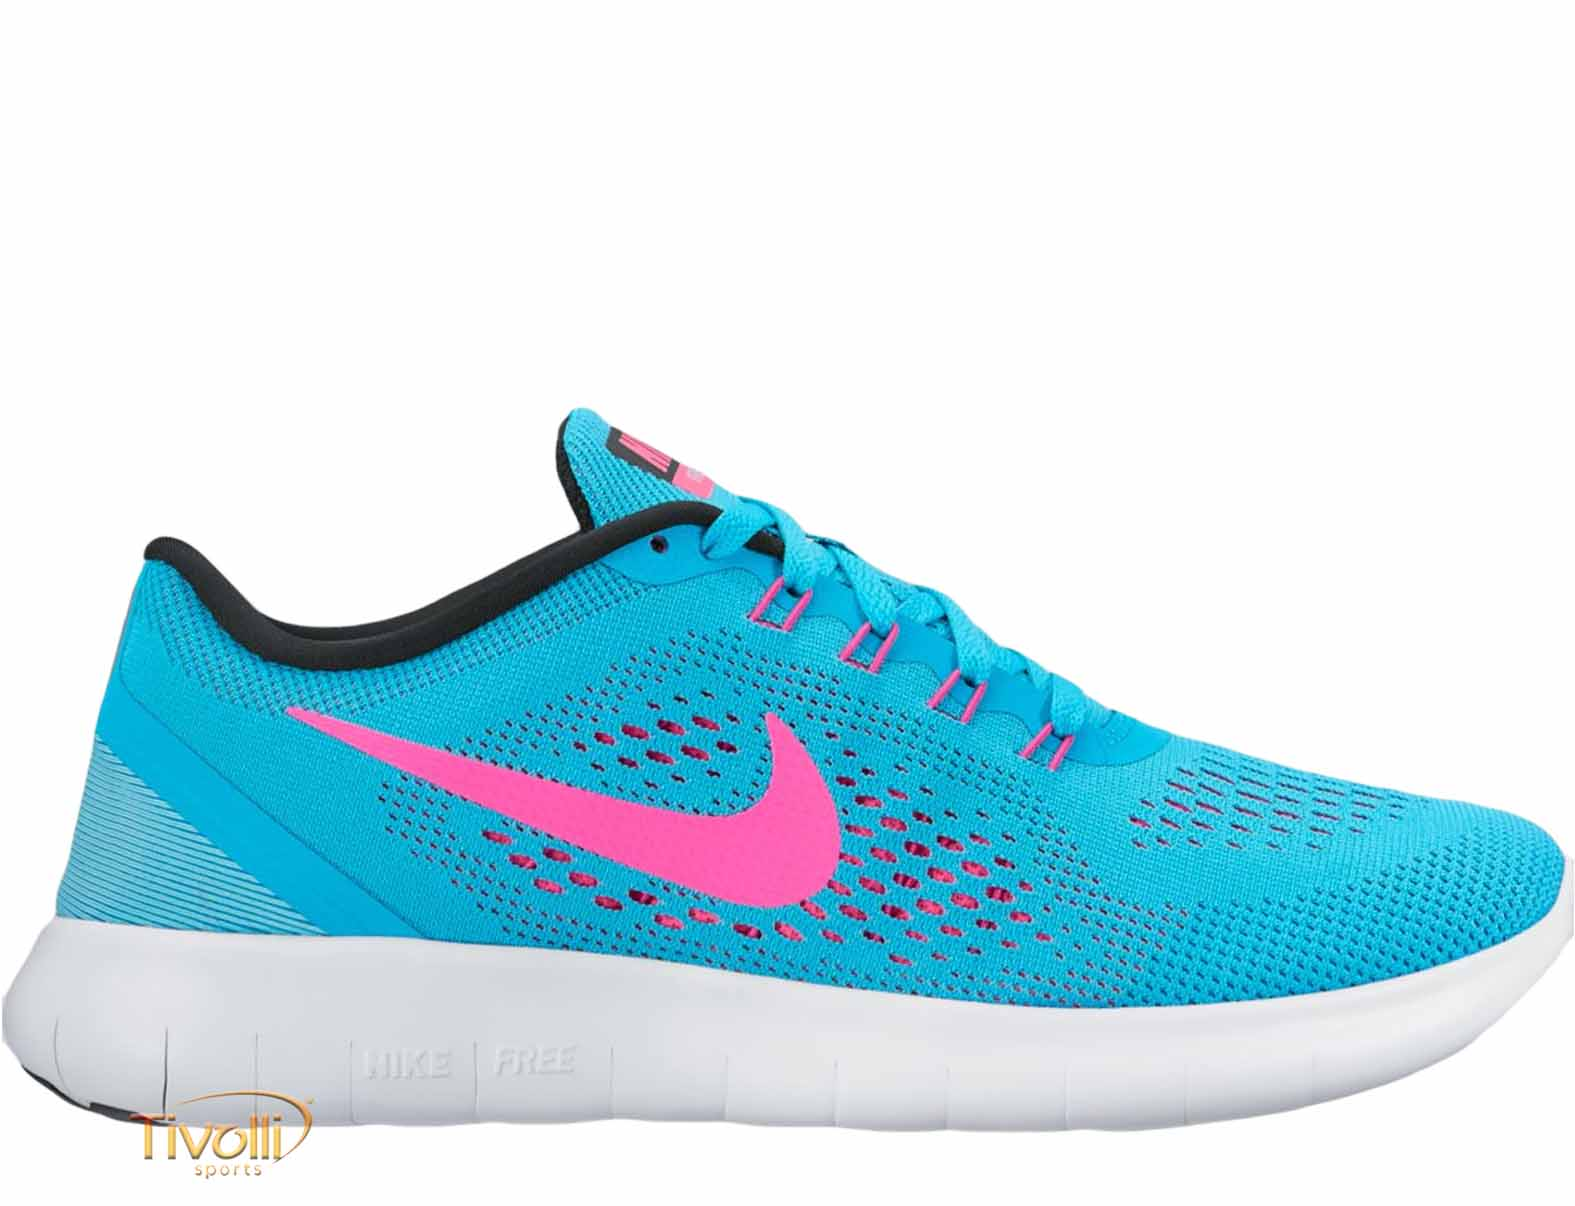 Raquete Mania   Tênis Nike Free RN feminino   Azul e Rosa Pink 3d2447a415